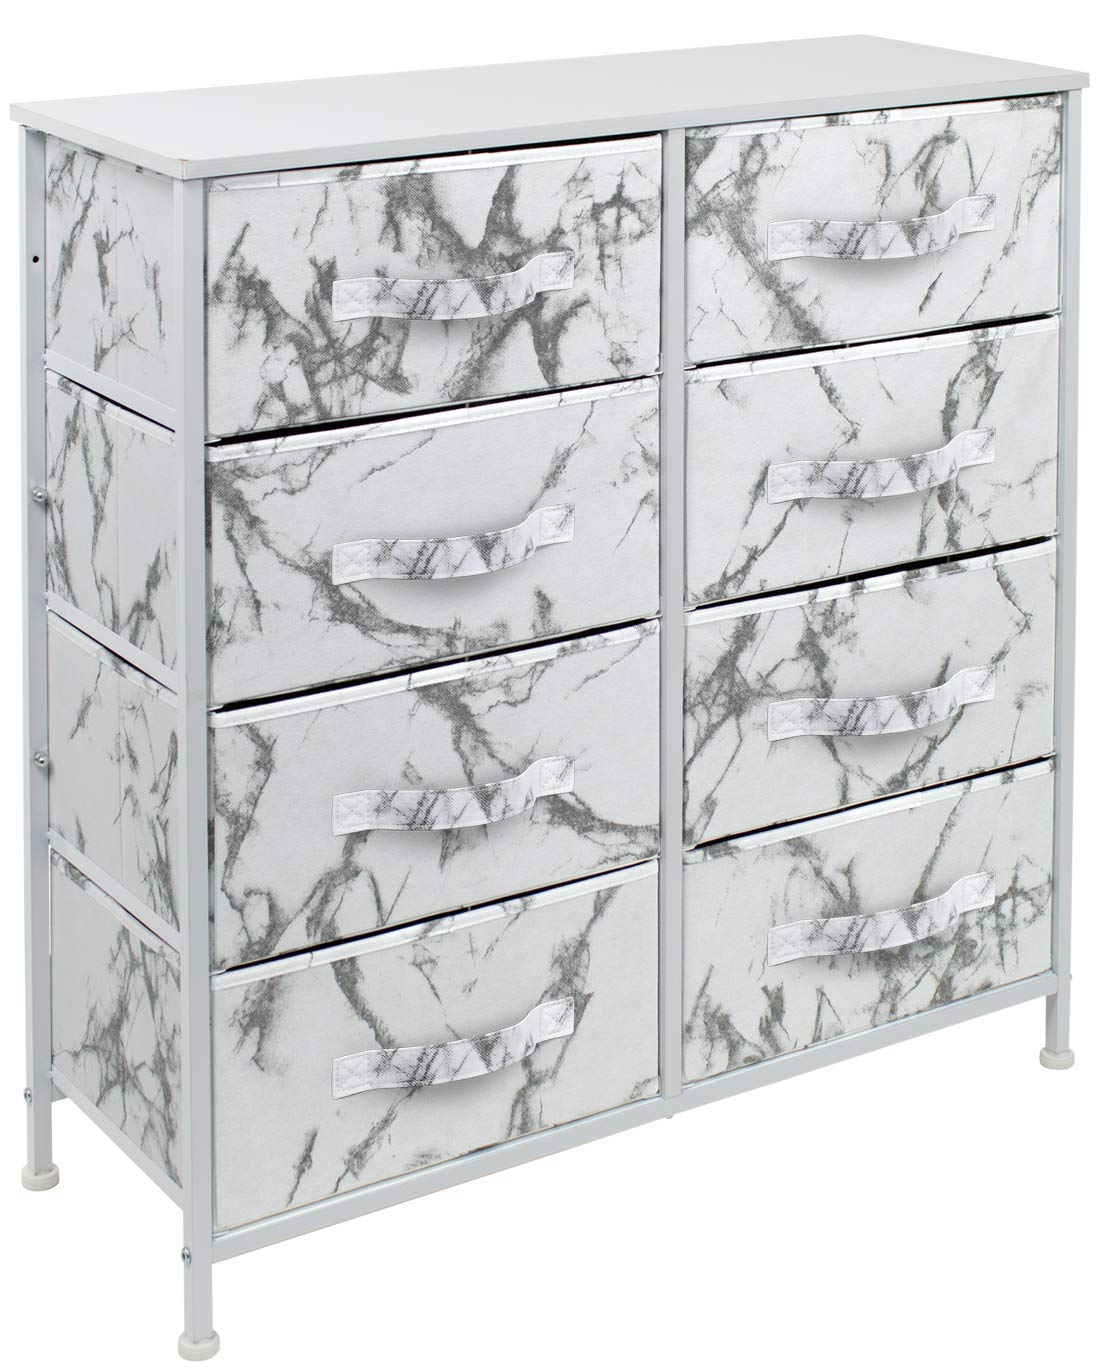 Sorbus Dresser with 8 Drawers - Furniture Storage Chest Tower Unit for Bedroom, Hallway, Closet, Office Organization - Steel Frame, Wood Top, Easy Pull Fabric Bins (Marble White – White Frame)